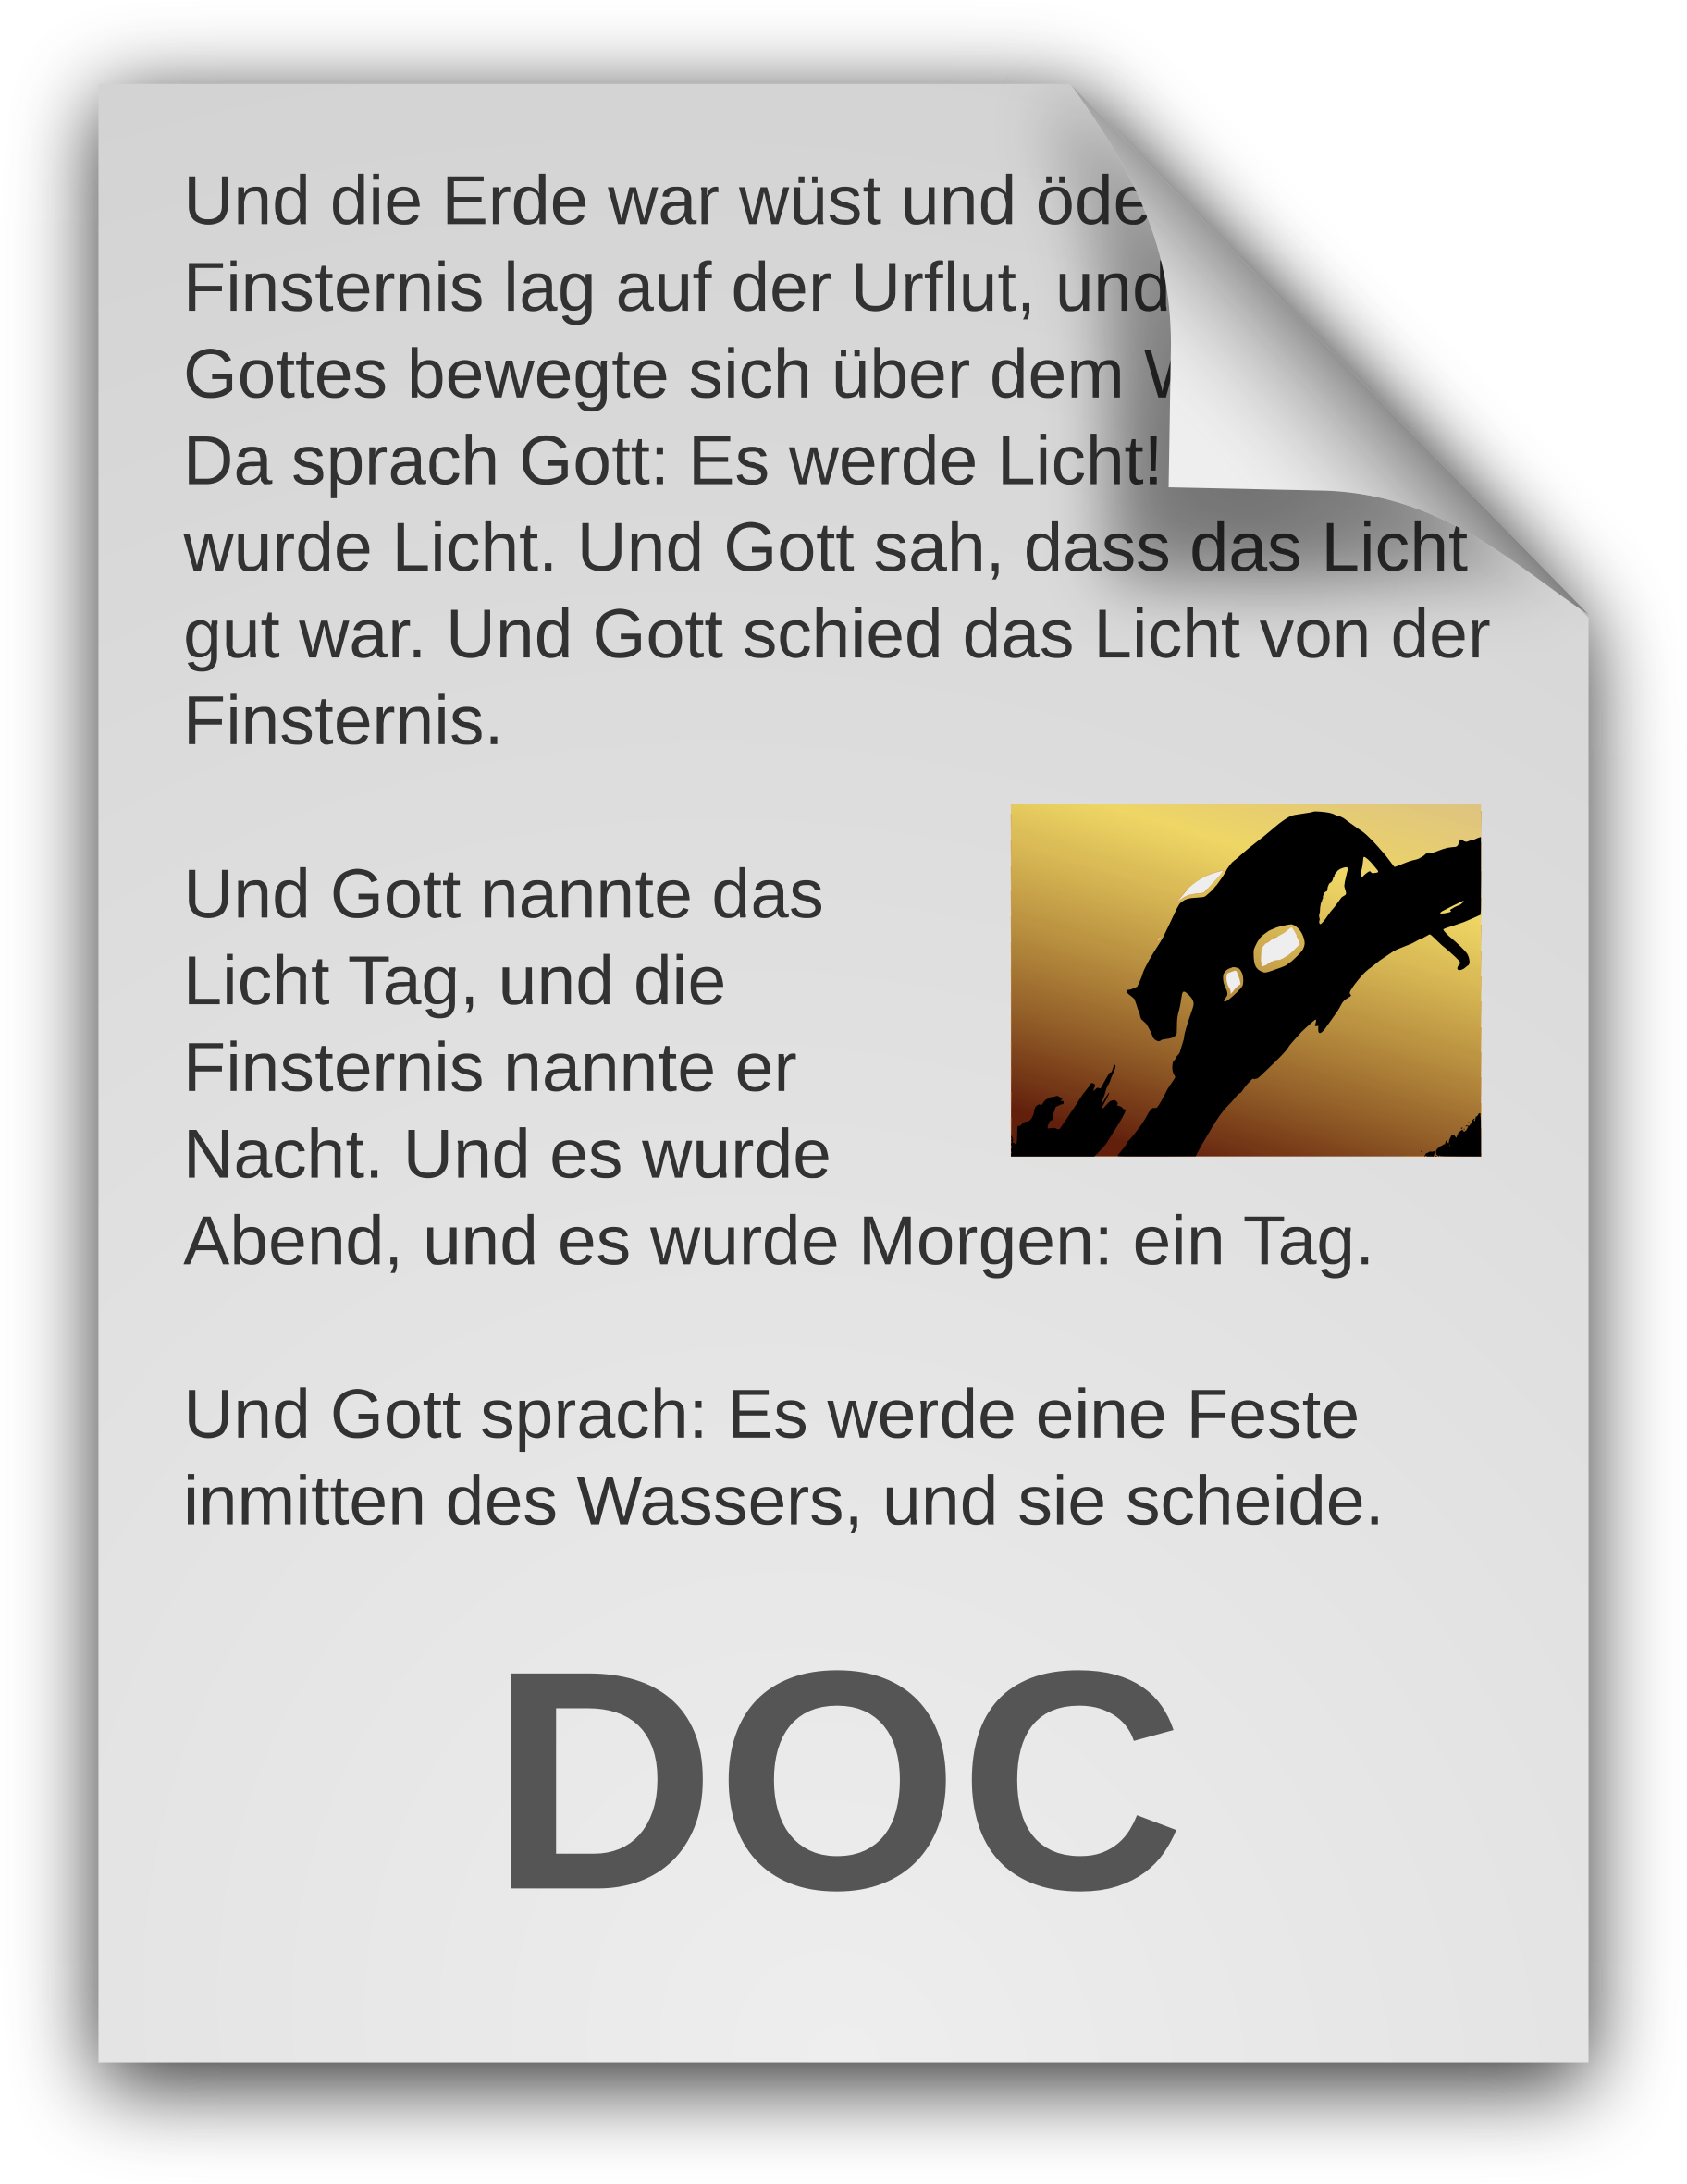 German clipart icon. Text document big image